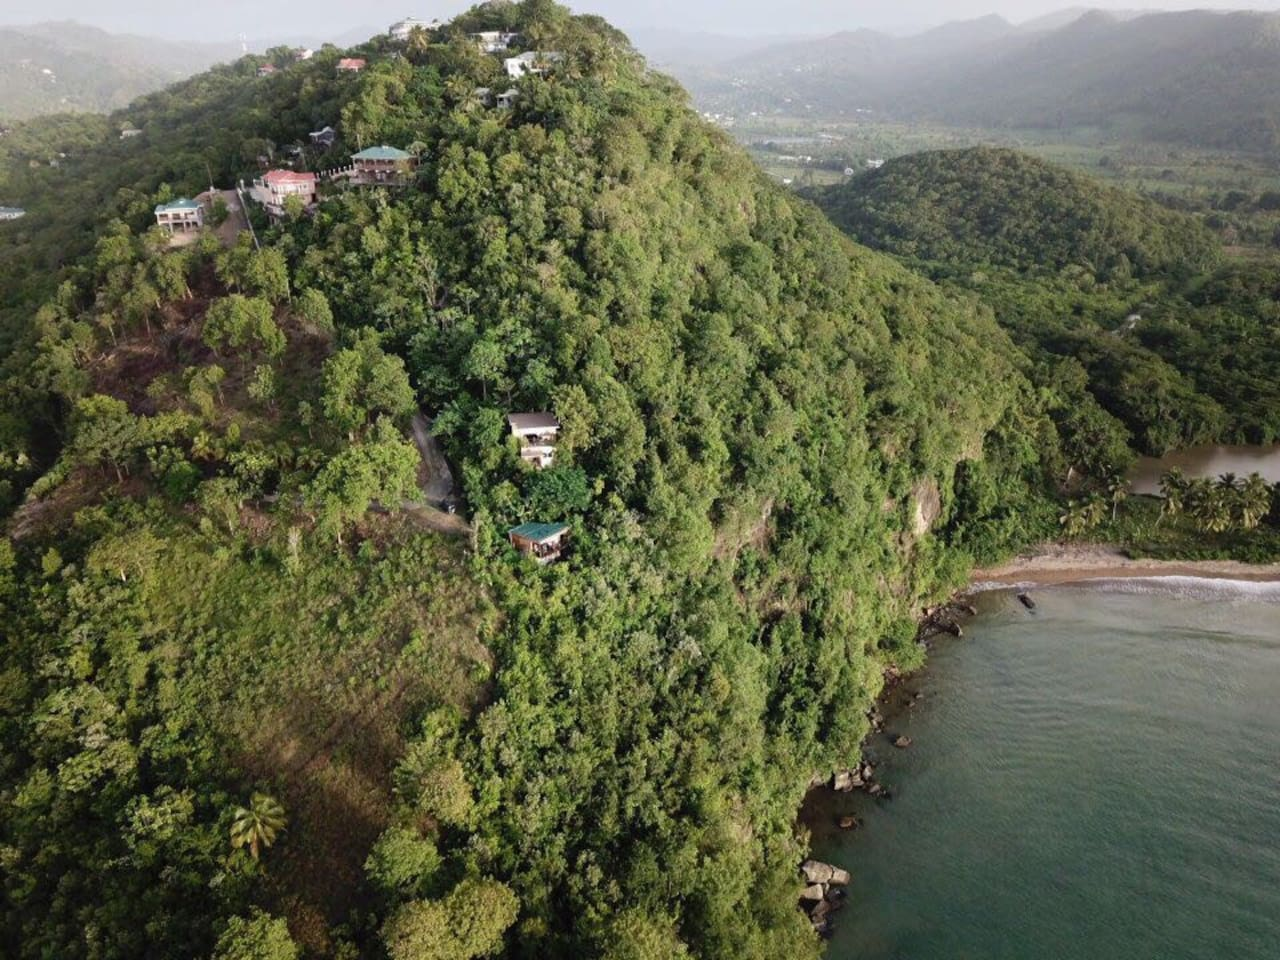 The Hummingbird Hangout with its green roof is in the centre of the photo below the Treehouse (yellow house) - wow what a view! Even local people are amazed when they see our view!